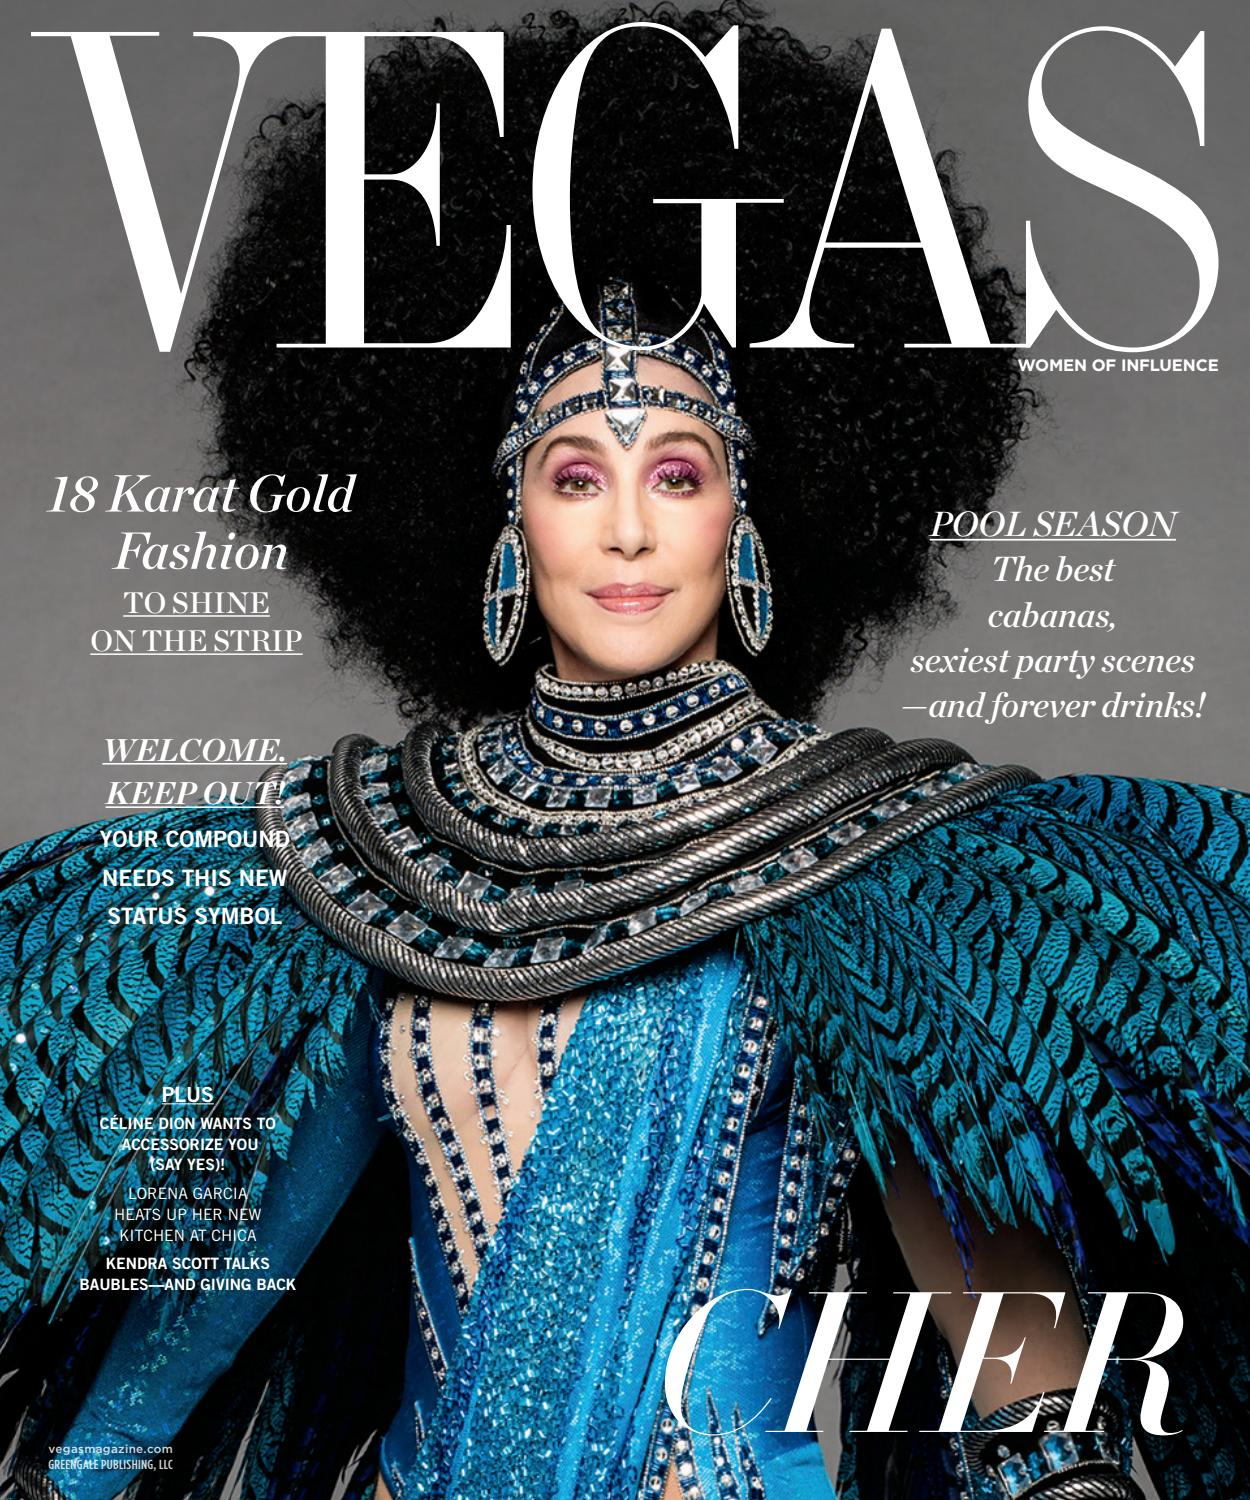 c7962eb7270d Vegas - 2017 - Issue 2 - Late Spring - Cher by MODERN LUXURY - issuu